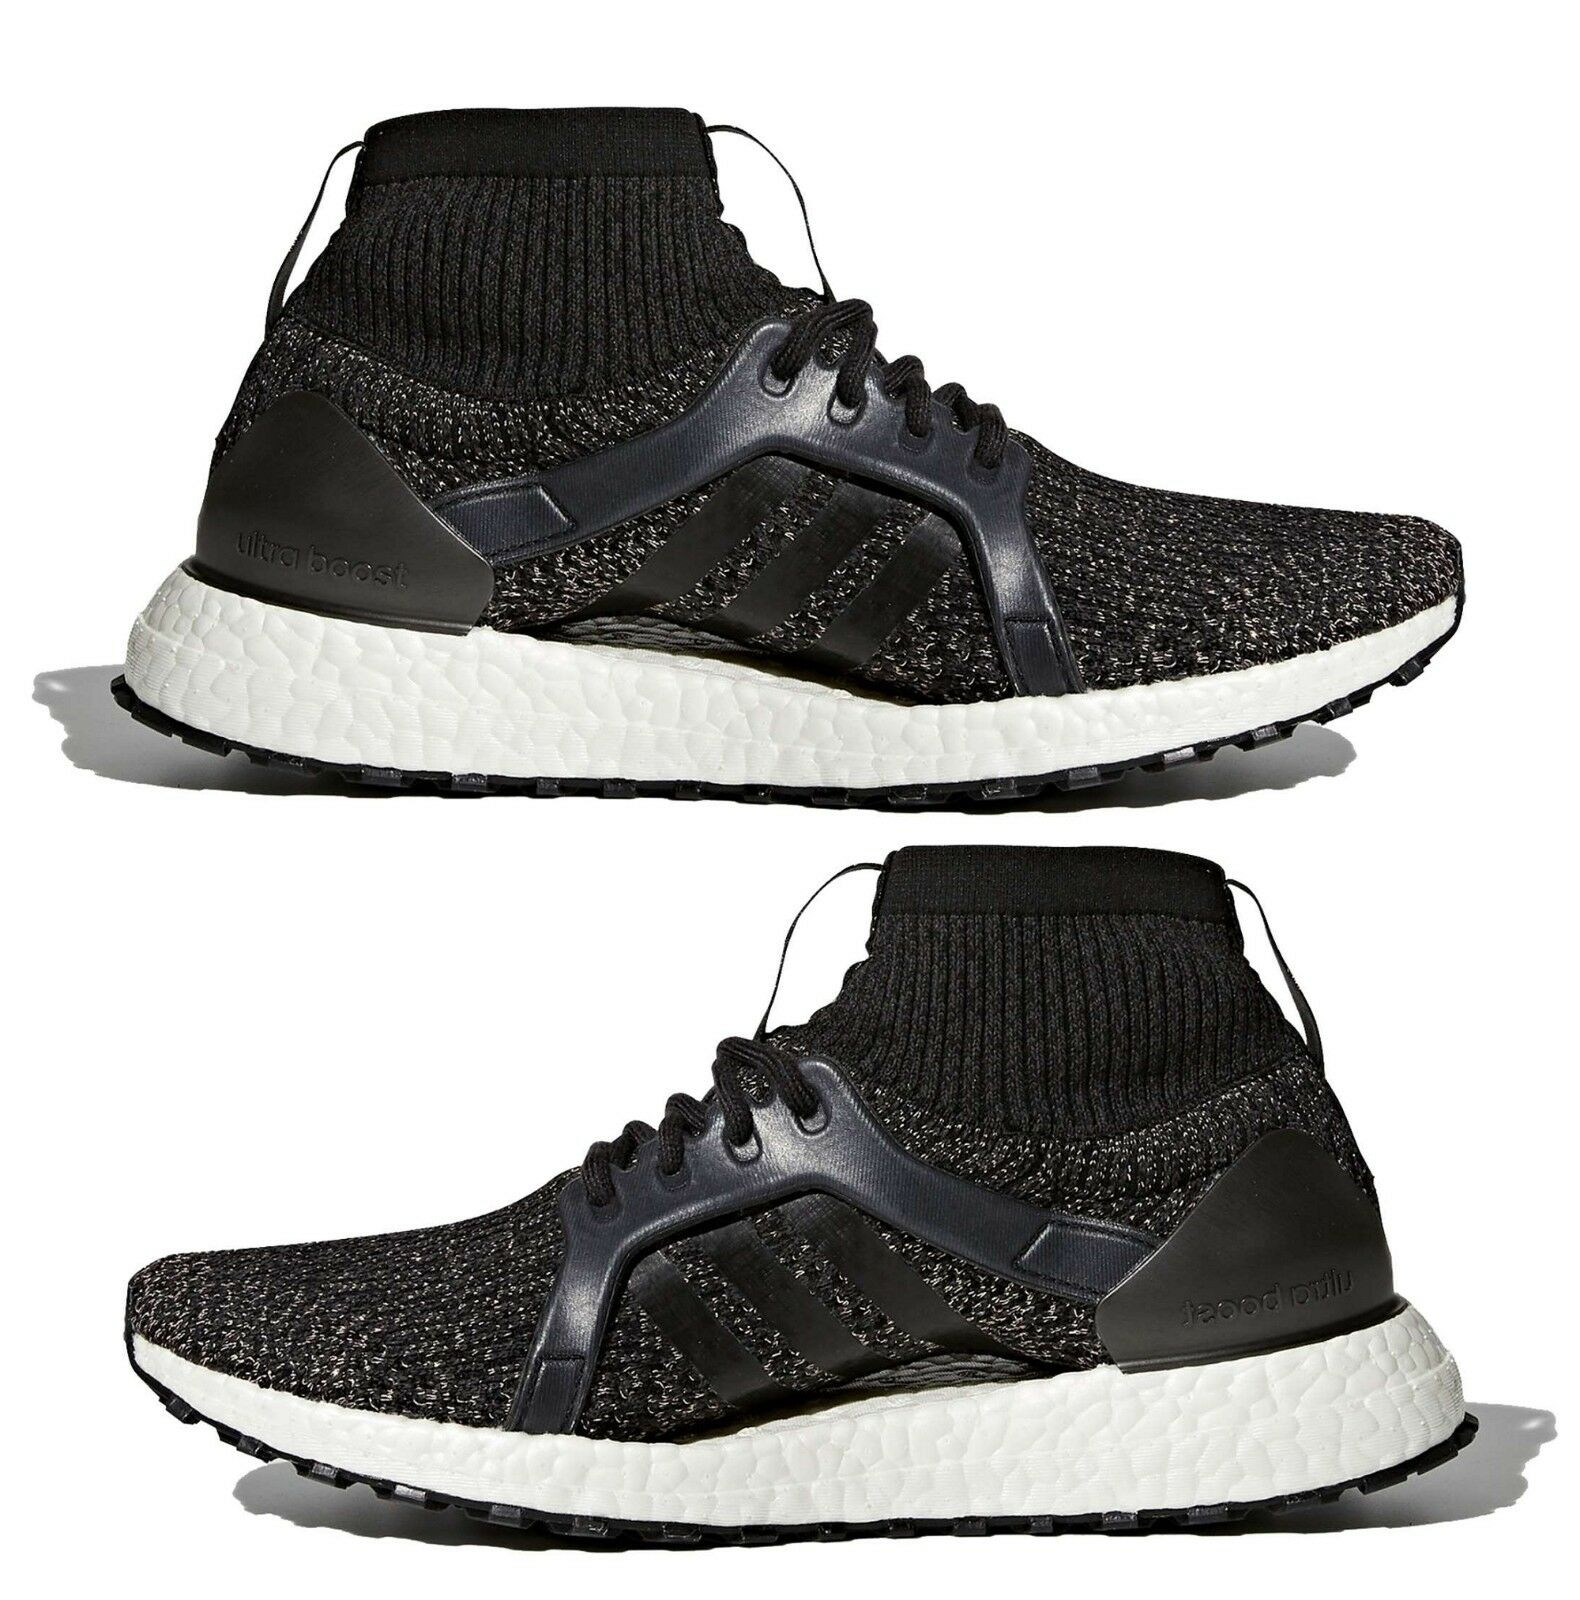 NEW Adidas Femme Athletic Sneakers Ultra Bottes   X All Terrain LTD Lace Up Chaussures